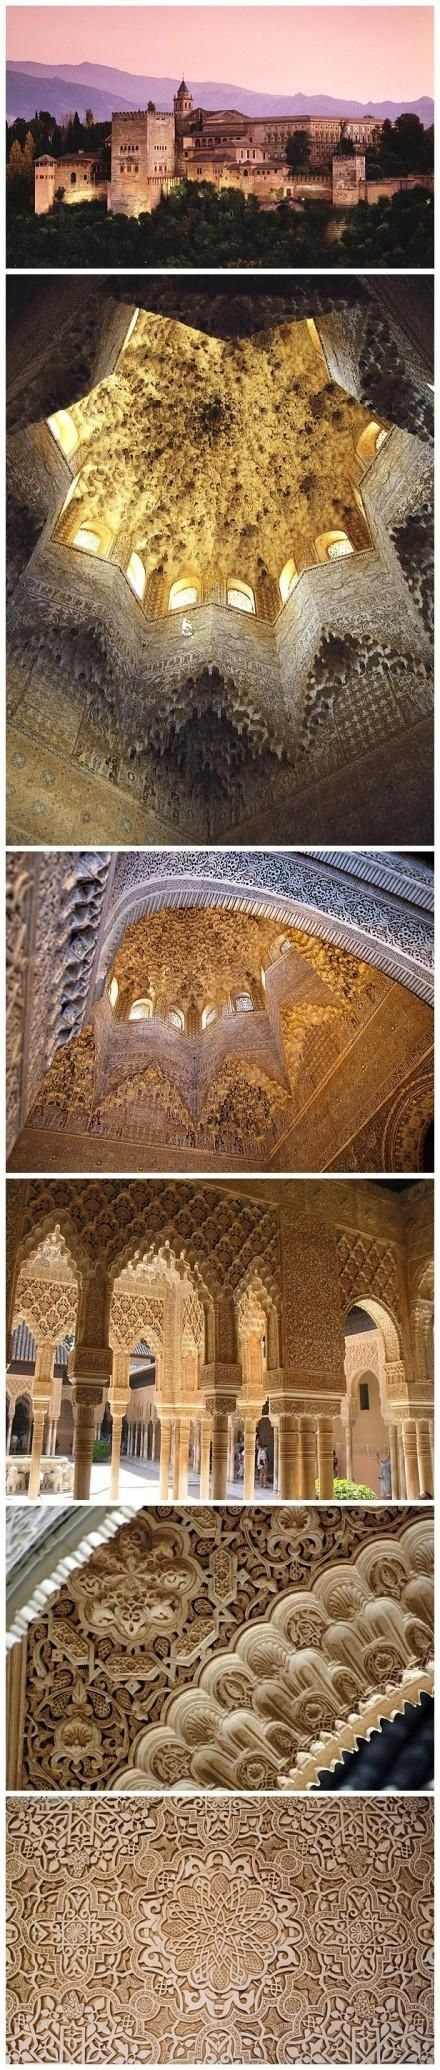 Alhambra Palace in southern Spain, a group of ancient buildings, architectural masterpieces of Islamic secular architecture and gardening skills perfect combination of outstanding representatives of the Arab palace courtyard building, in 1984 was selected for the United Nations, UNESCO UNESCO World Heritage List, the entire building ...